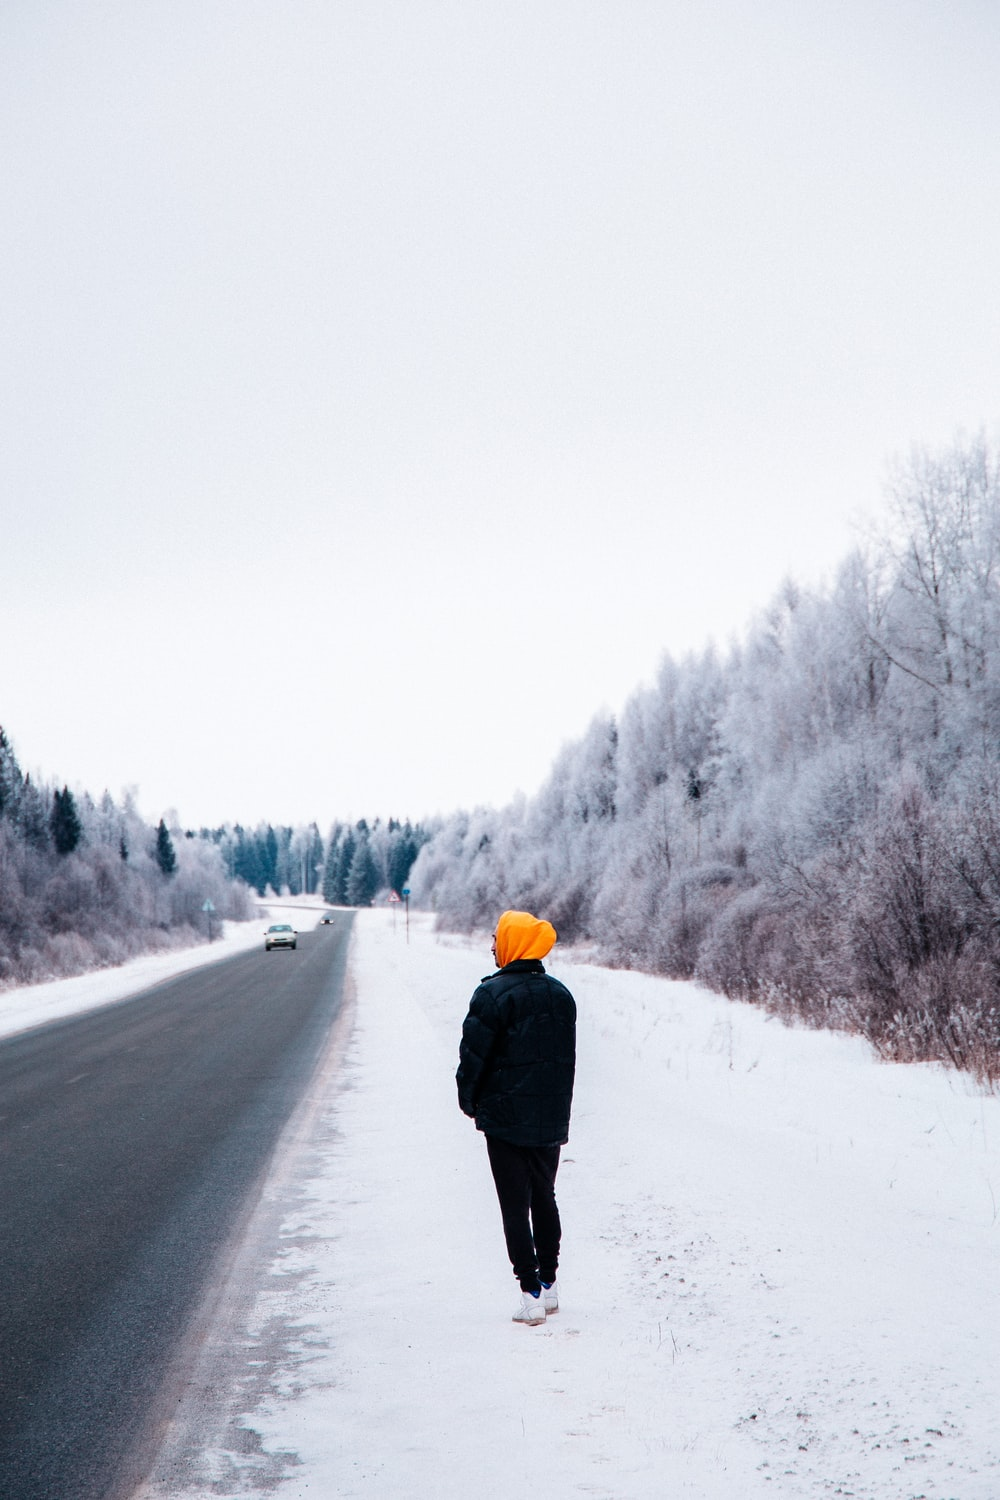 white vehicle on road and person walking on snowy field during daytime